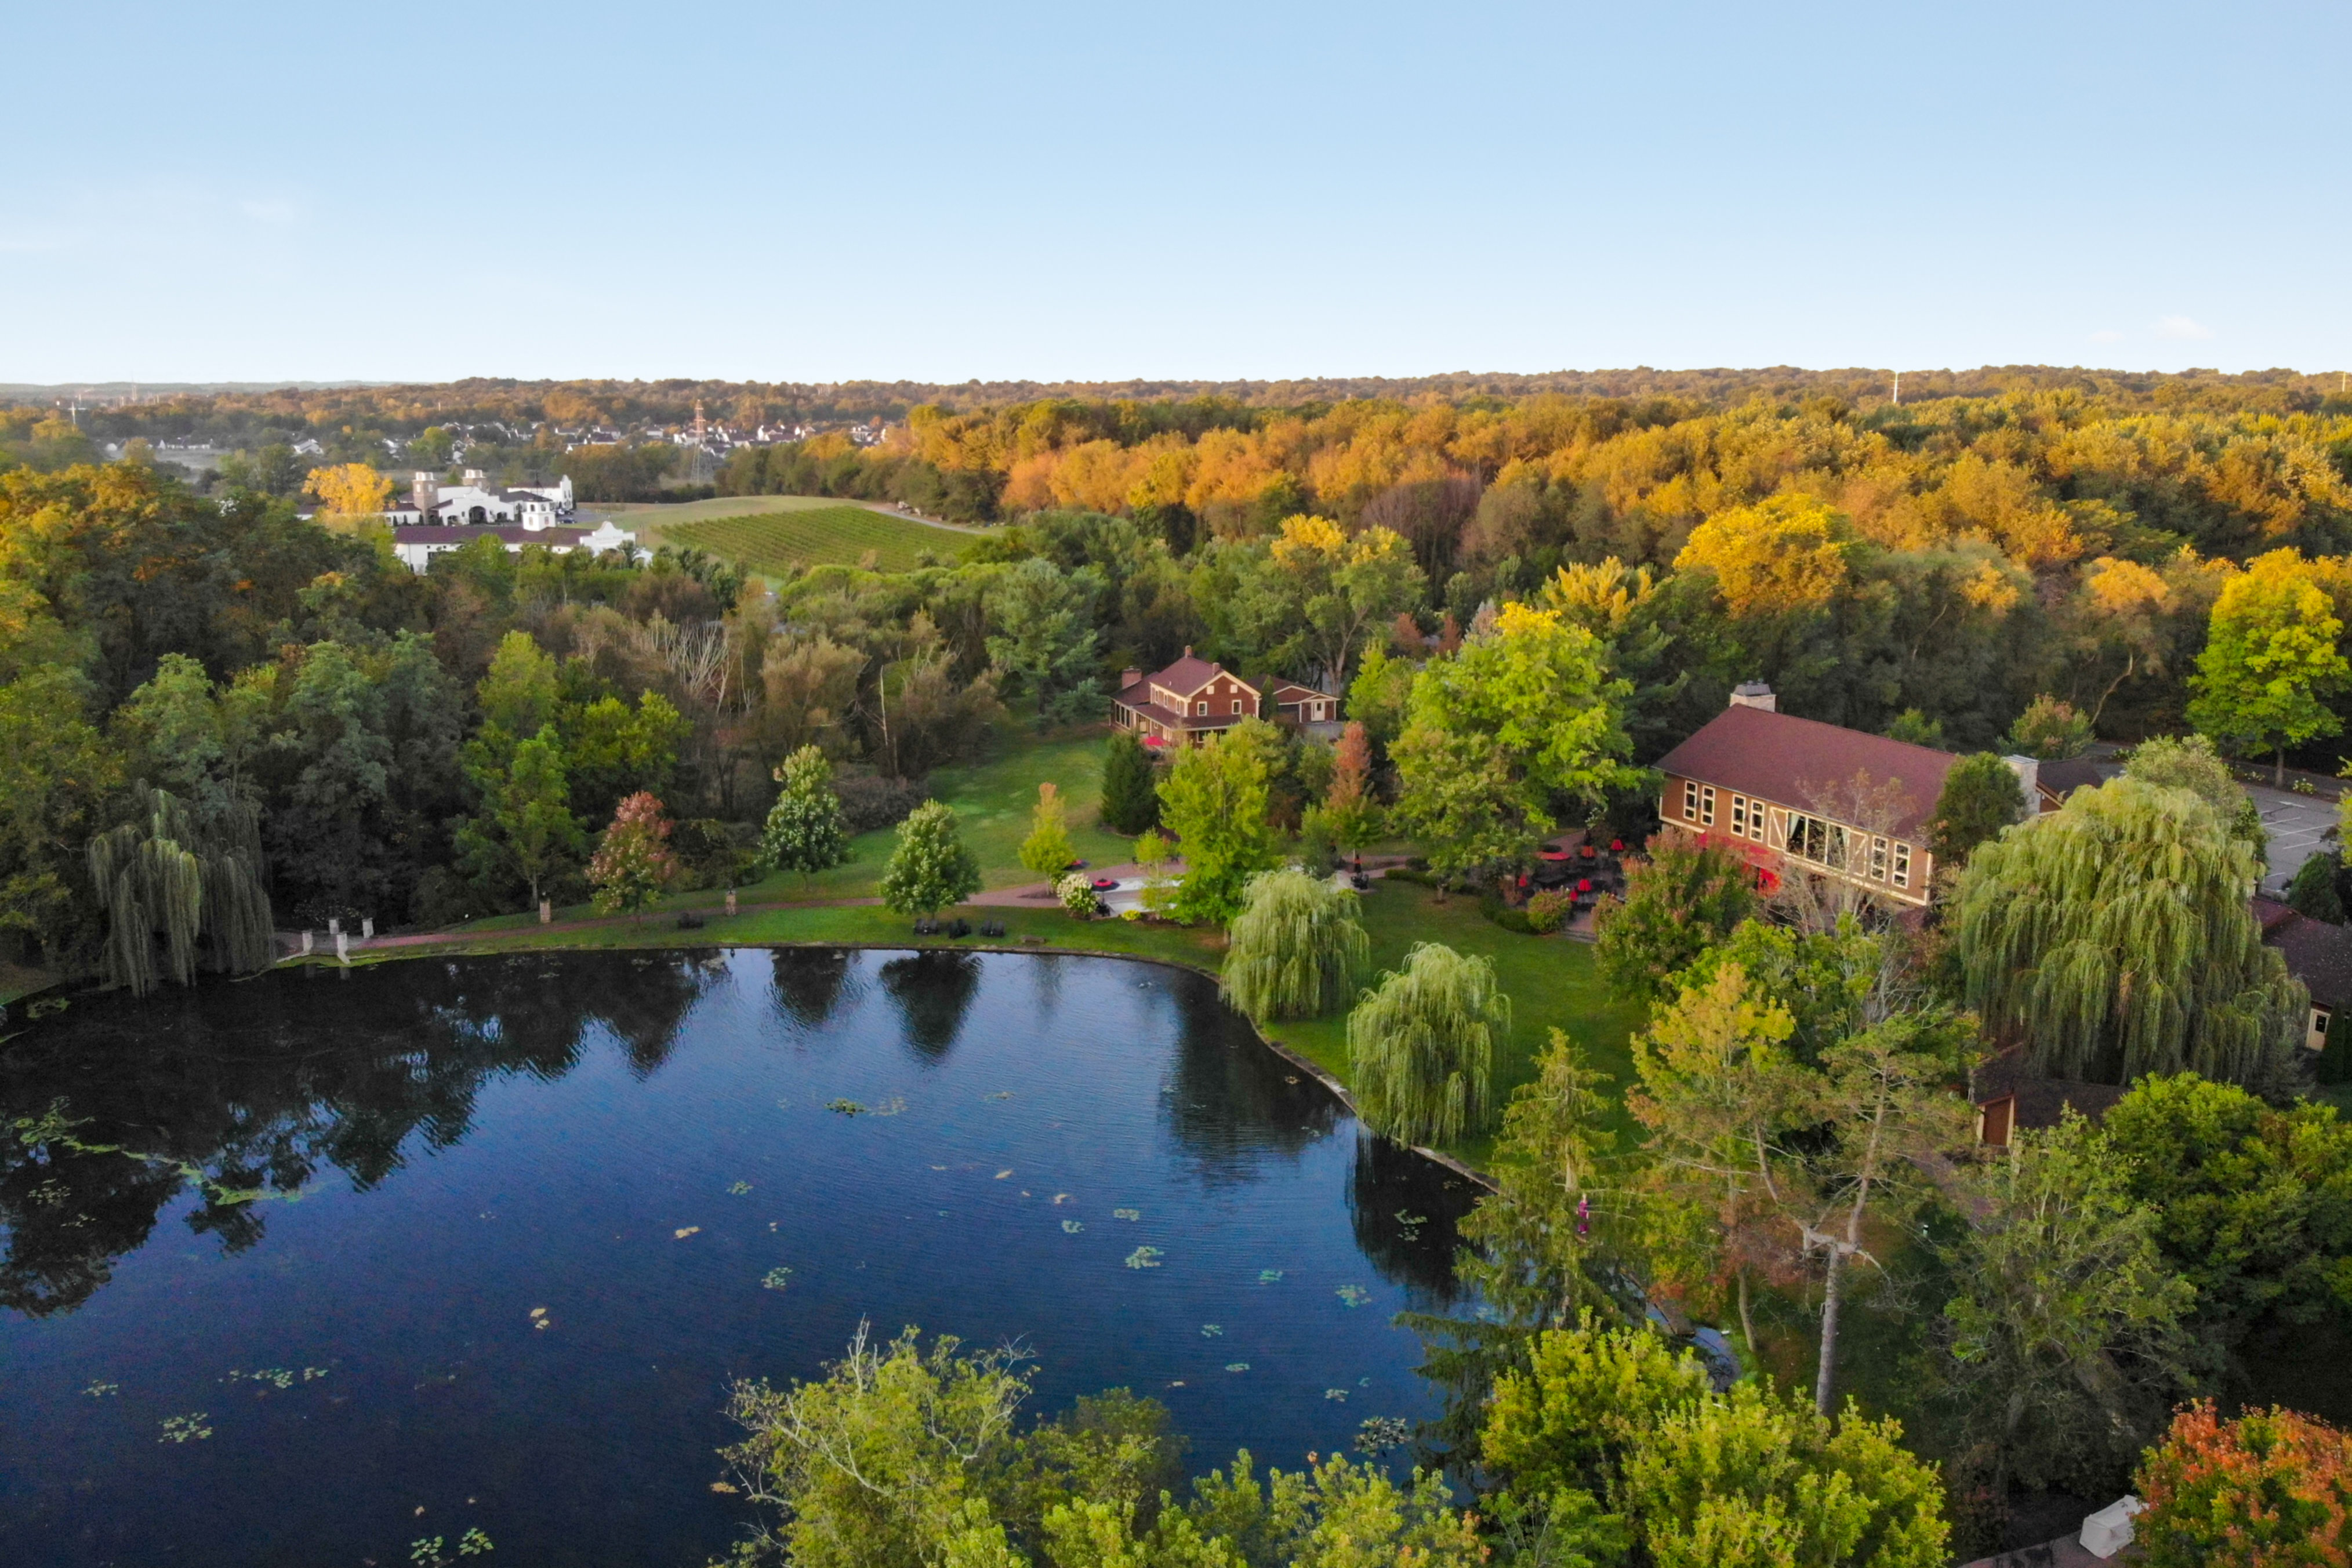 A body of water surrounded by trees at Gervasi Vineyard Luxury Suites.